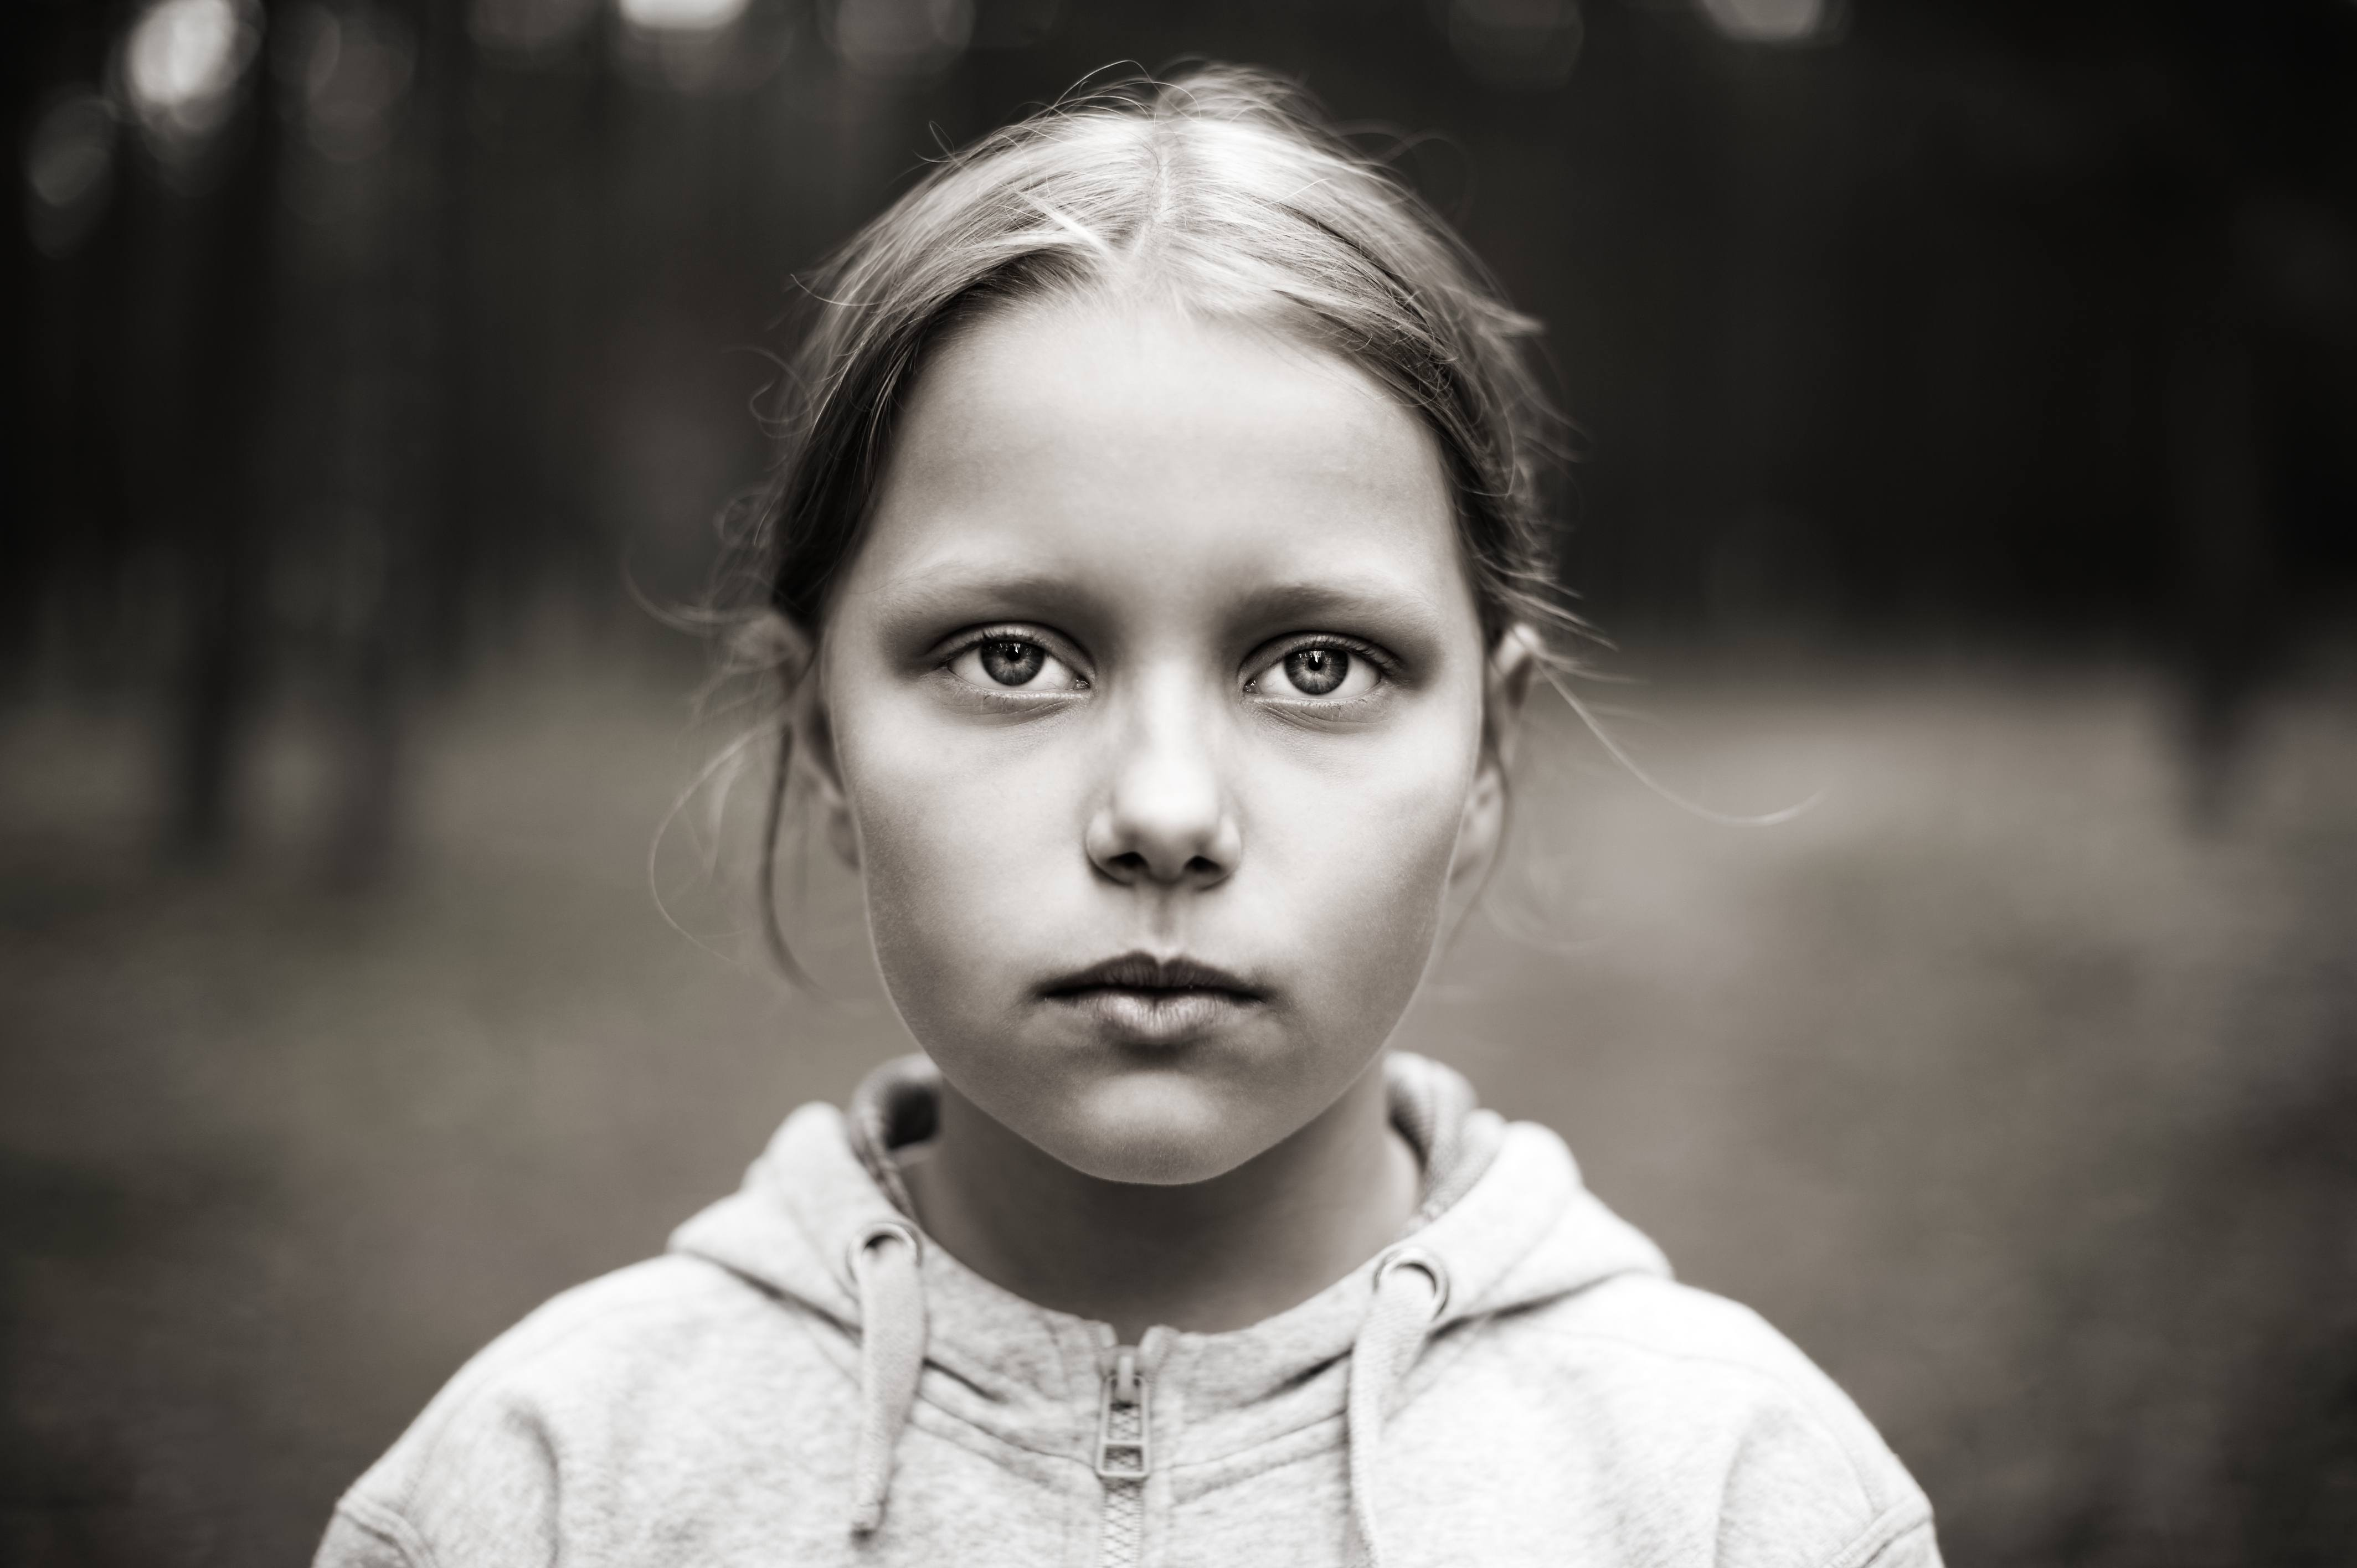 a young serious, frightened and sad looking girl in a black and white photo